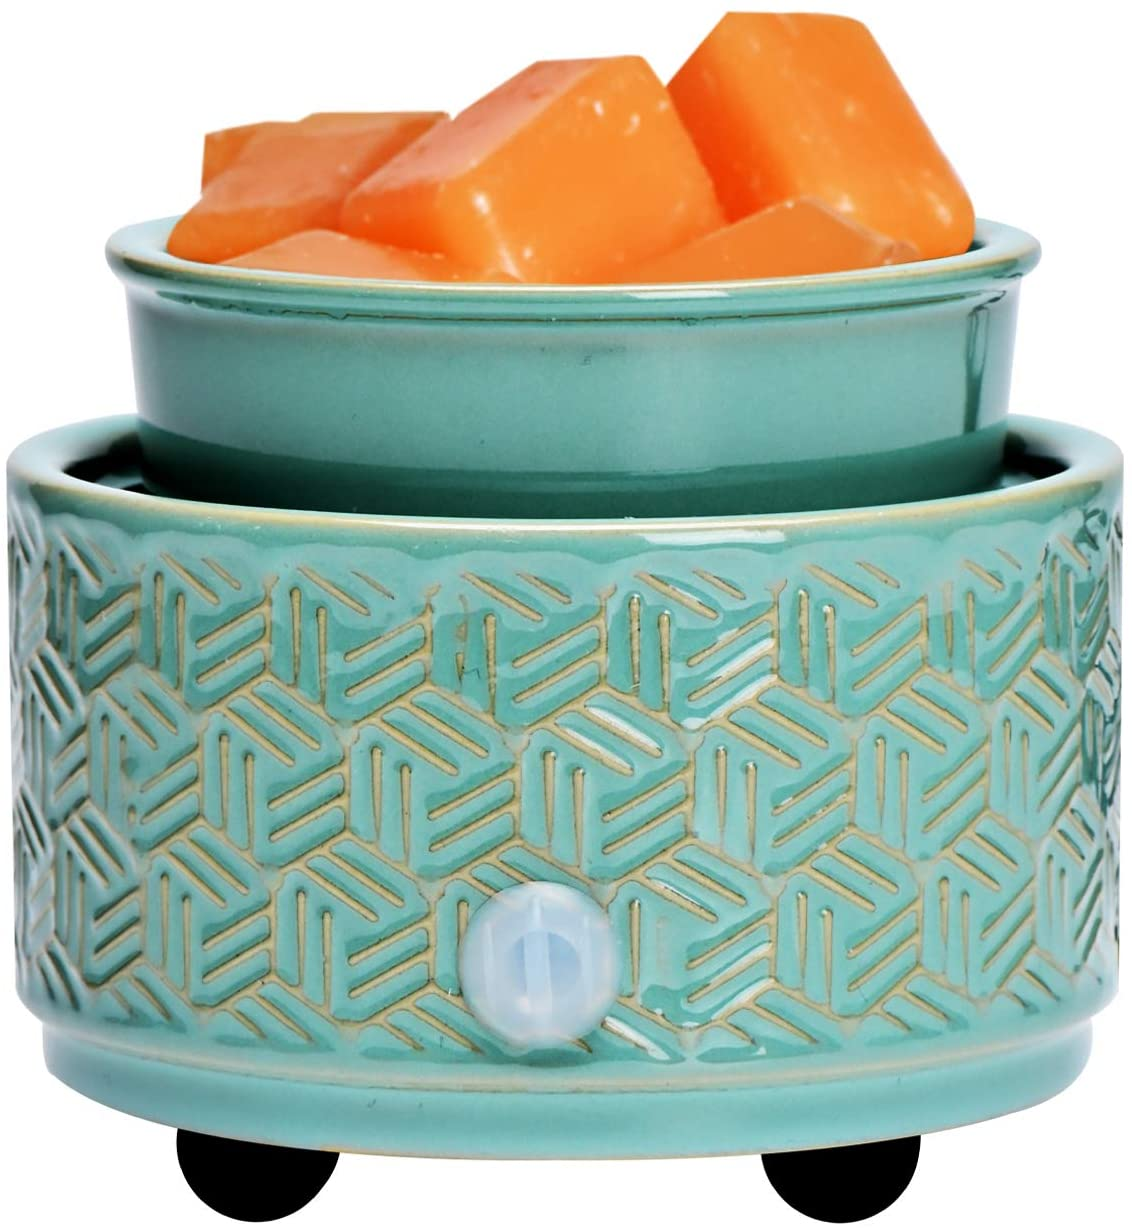 ASAWASA Ceramic Electric Wax Melt Warmer, Candle Waxing Warmer, Use Wax Melts Cubes Essential Oils and Fragrance Oils, Gifts for Aromatherapy Spa Home Office 4.02